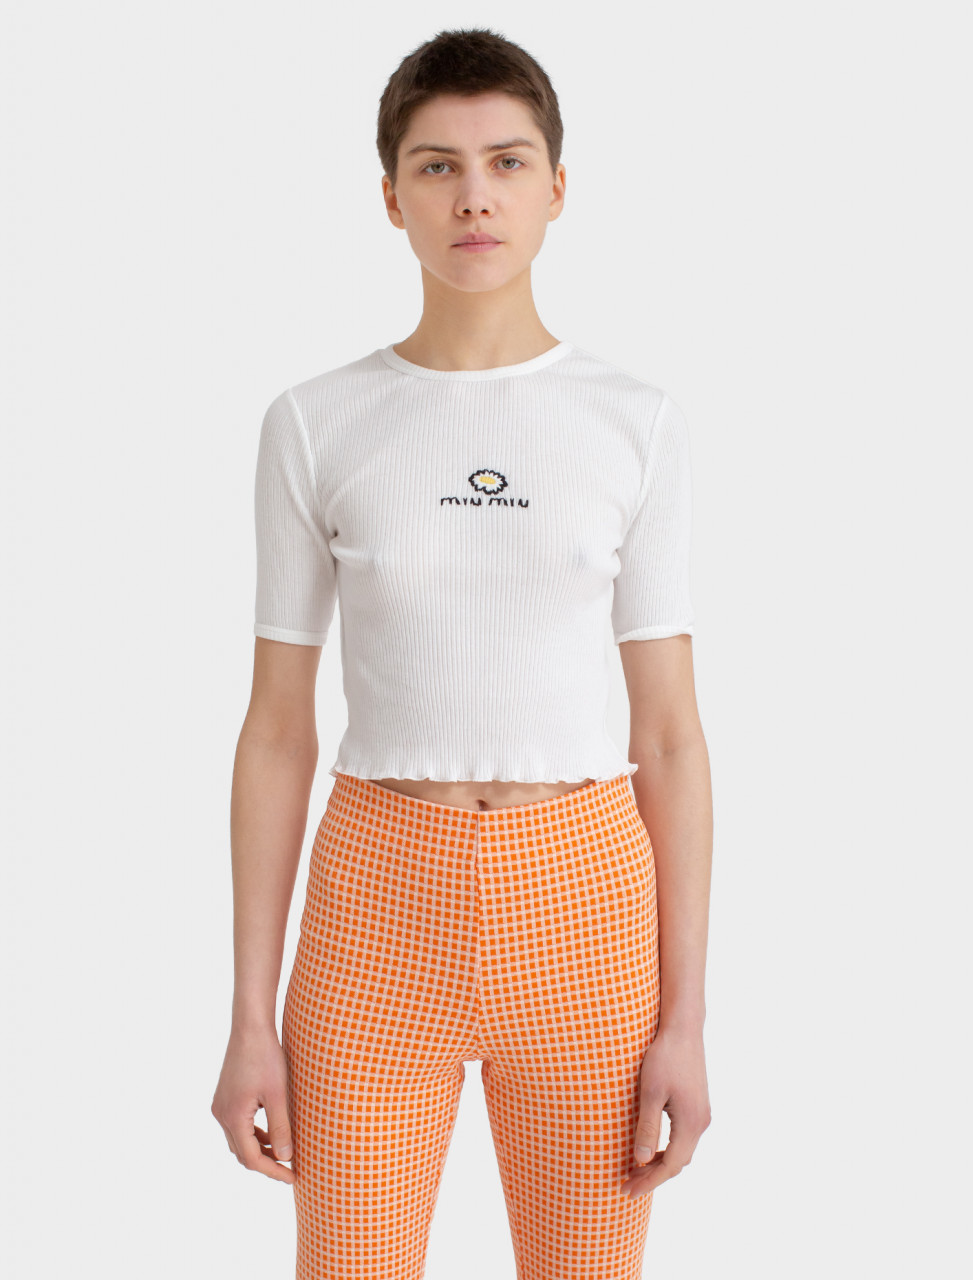 Cropped T-Shirt with Embroidered Daisy Motif